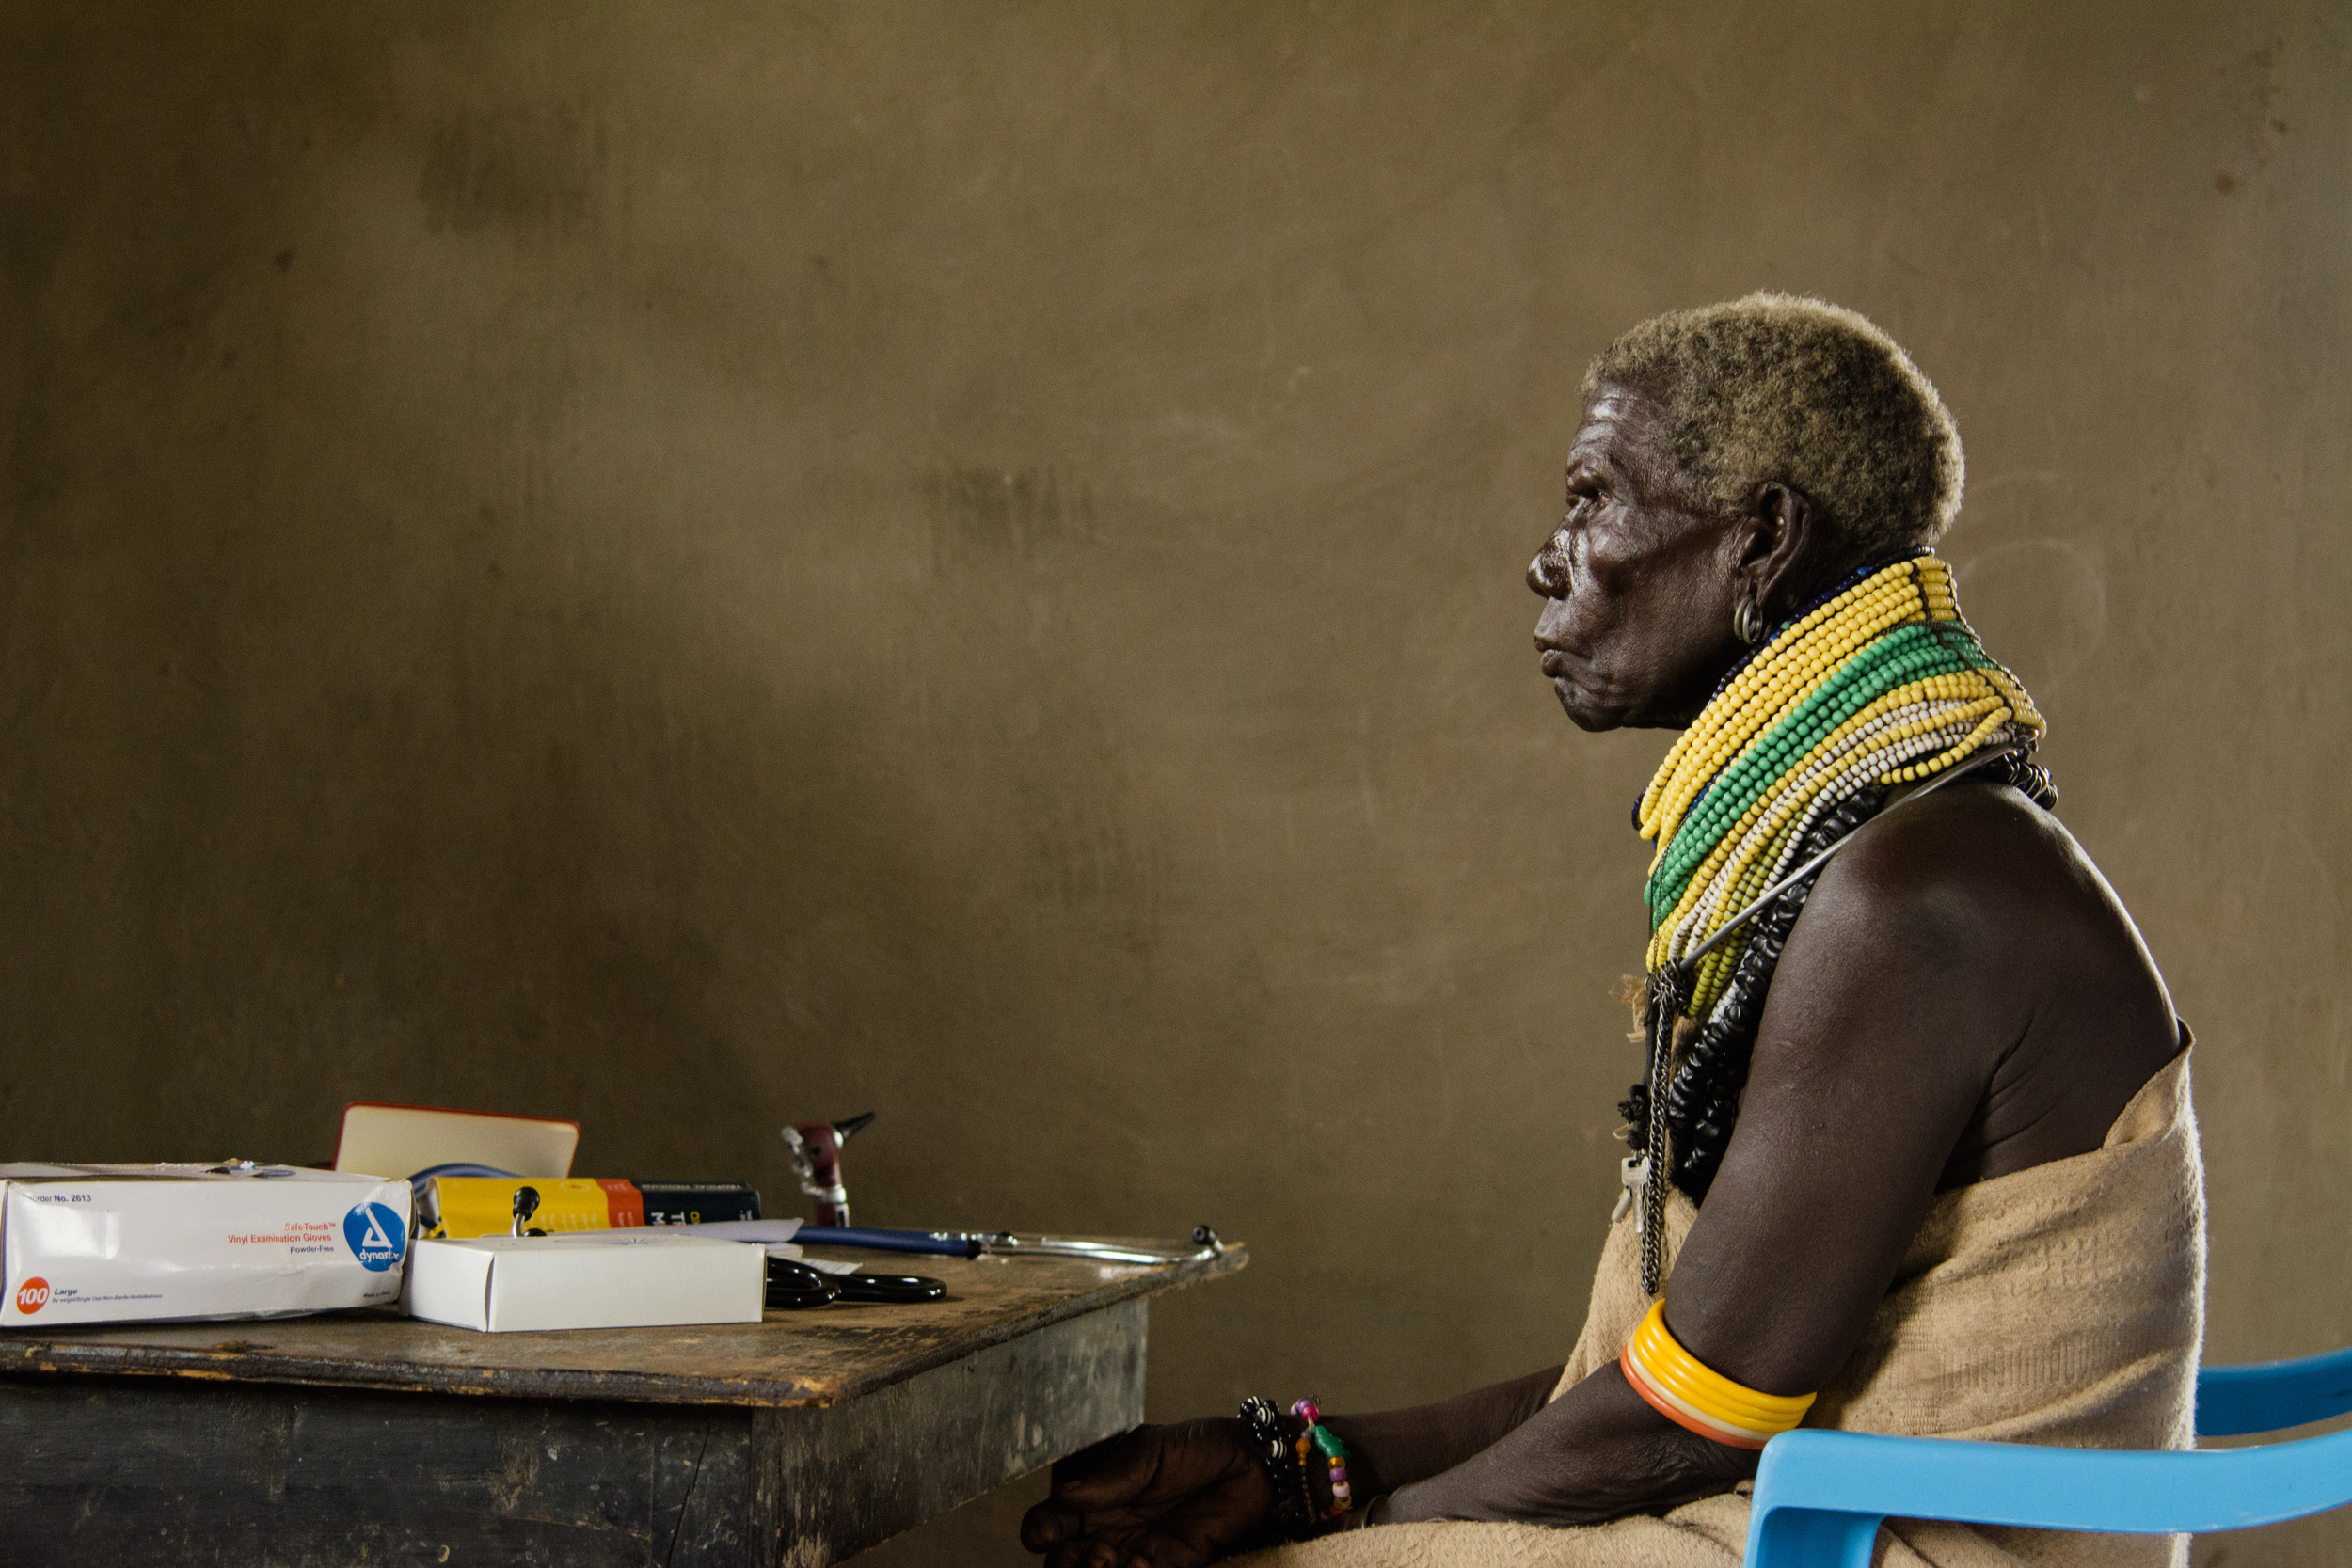 A patient waits to be seen by a doctor at the clinic